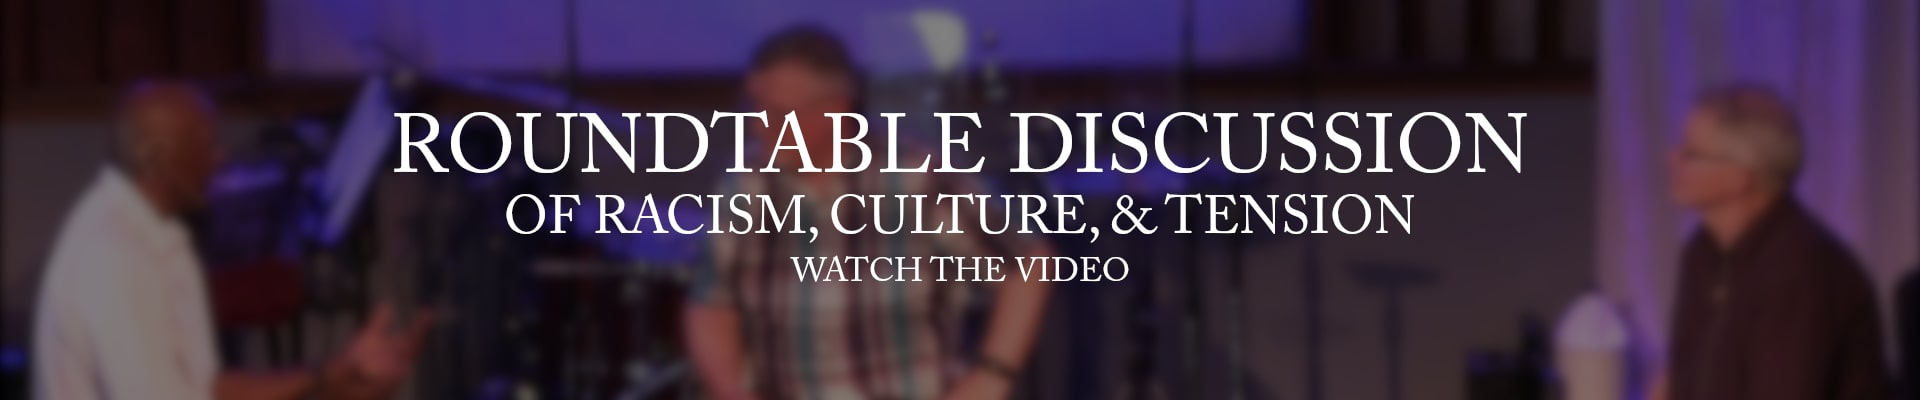 Roundtable Discussion of Racism, Culture, and Tension - Watch the Video